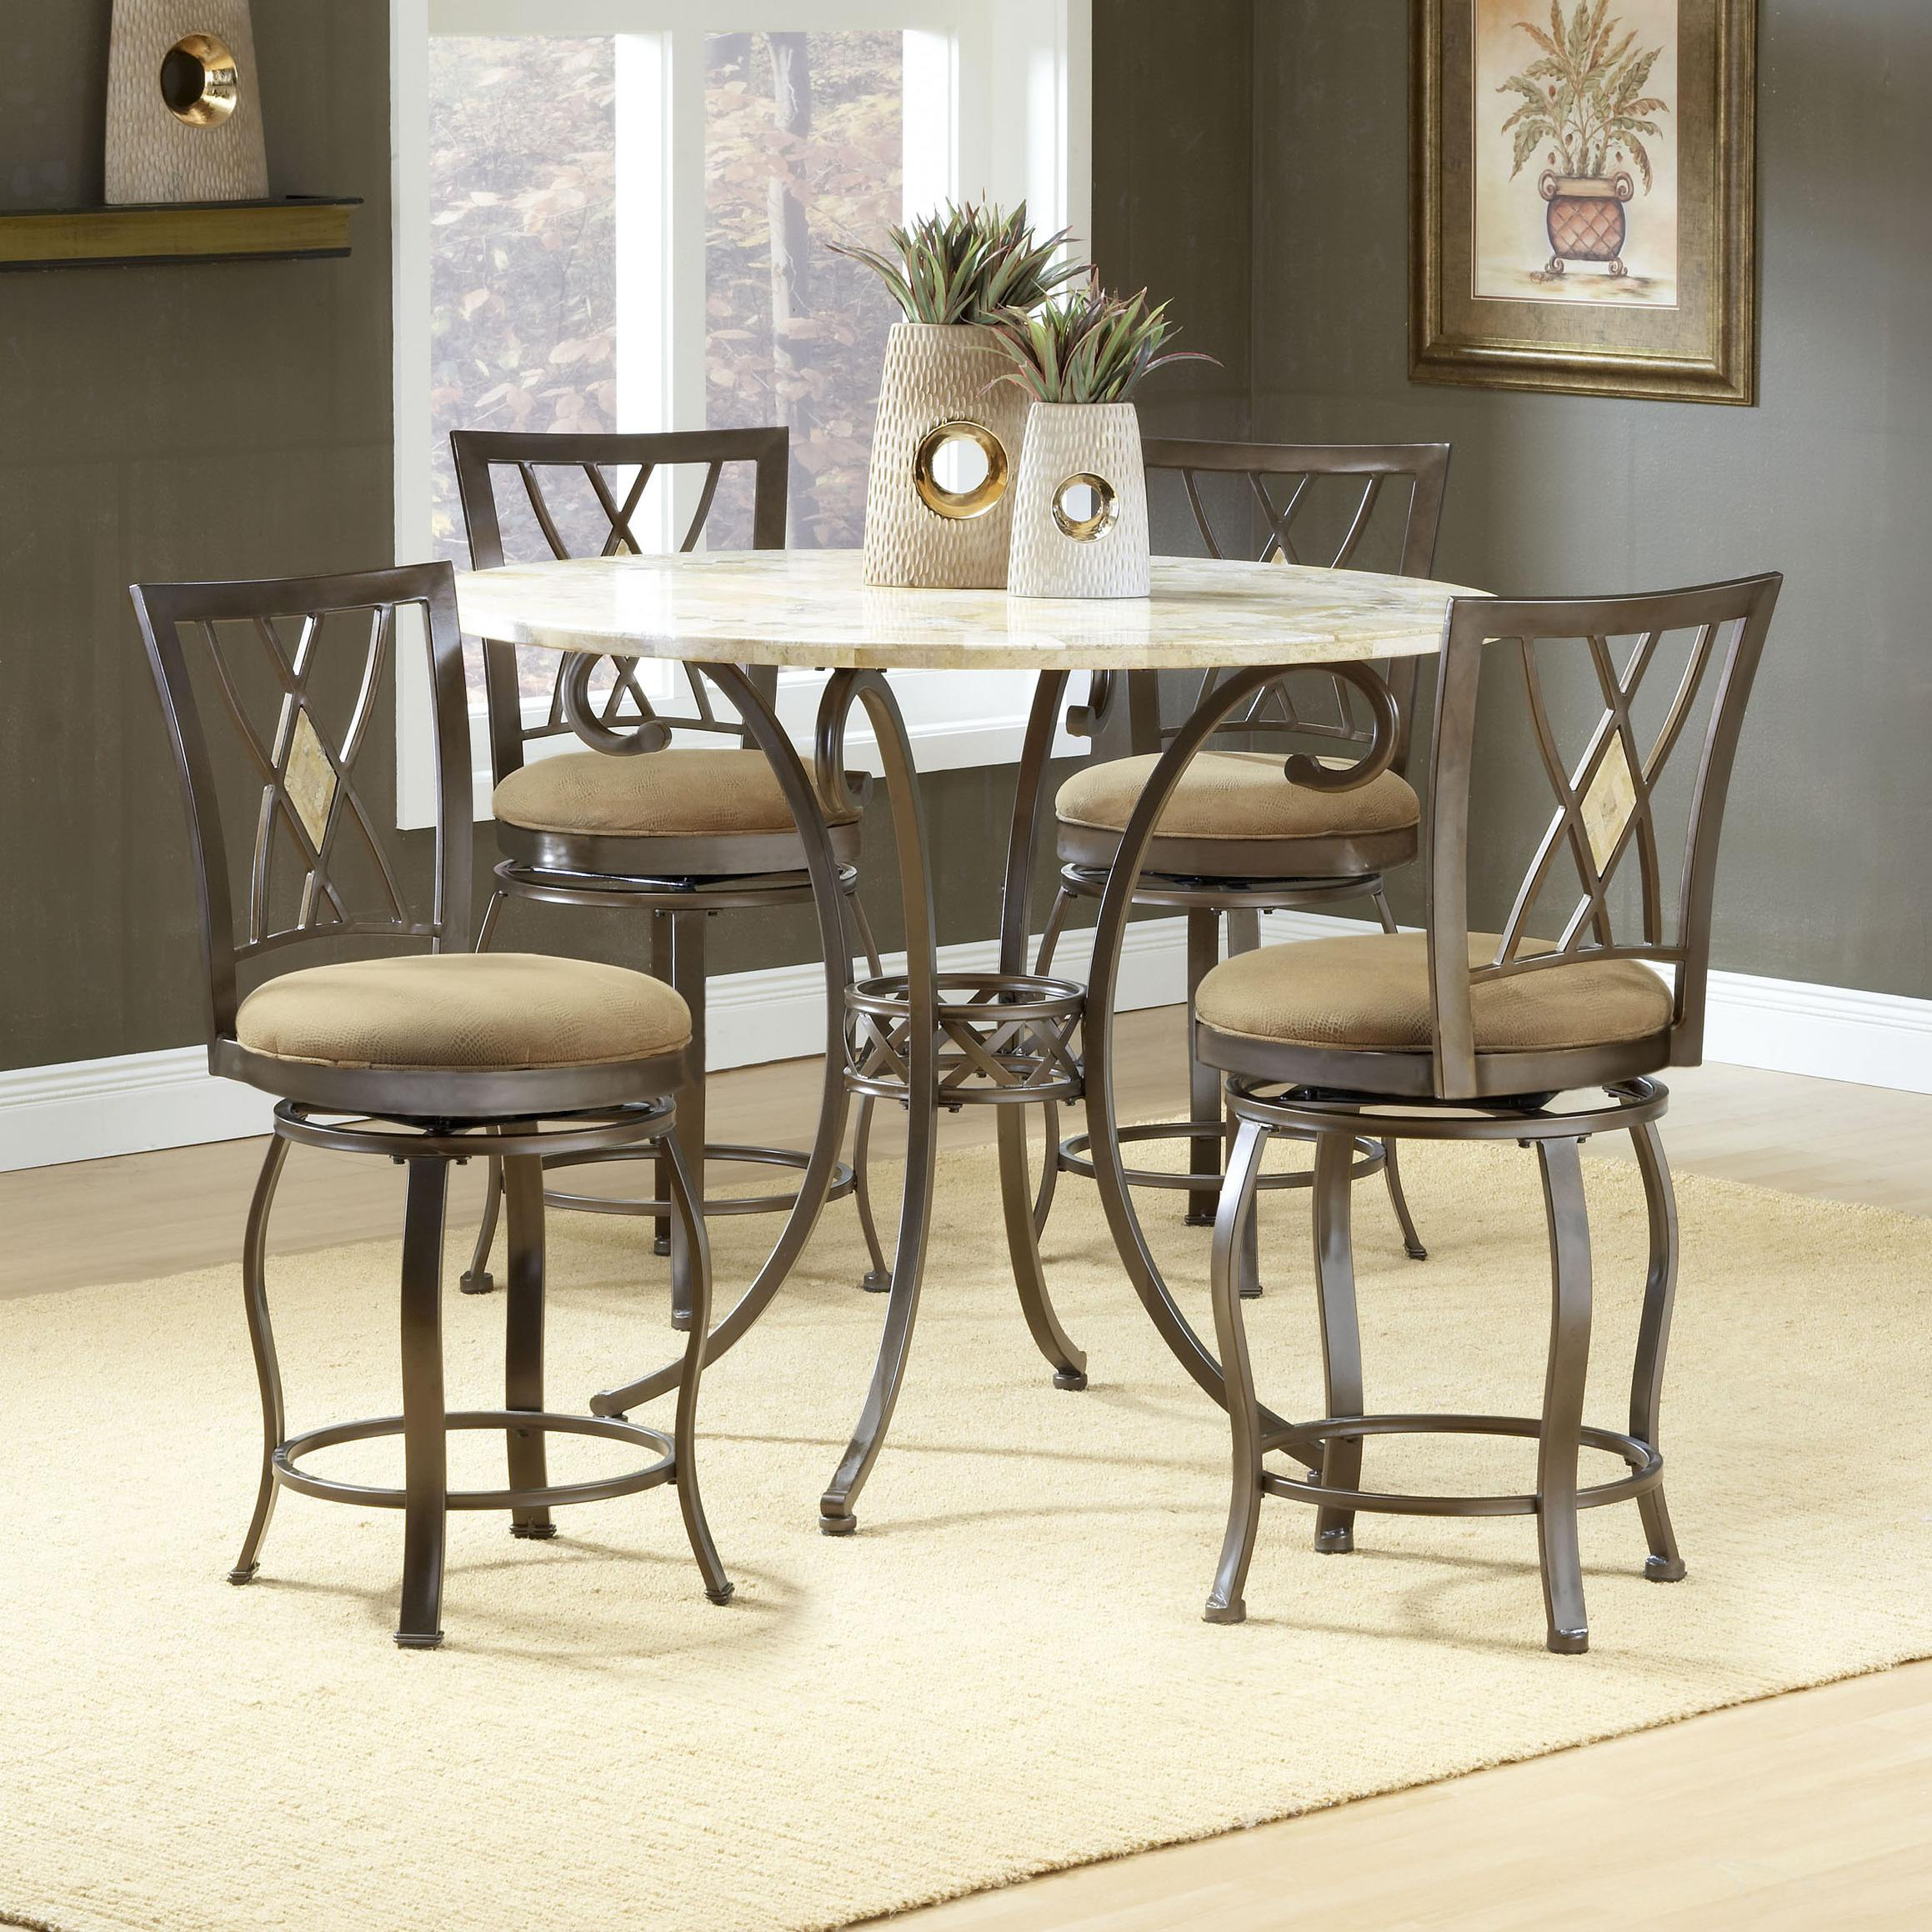 Hillsdale Dining Table Brookside Round Dining Table With Fossil Stone Top Rotmans